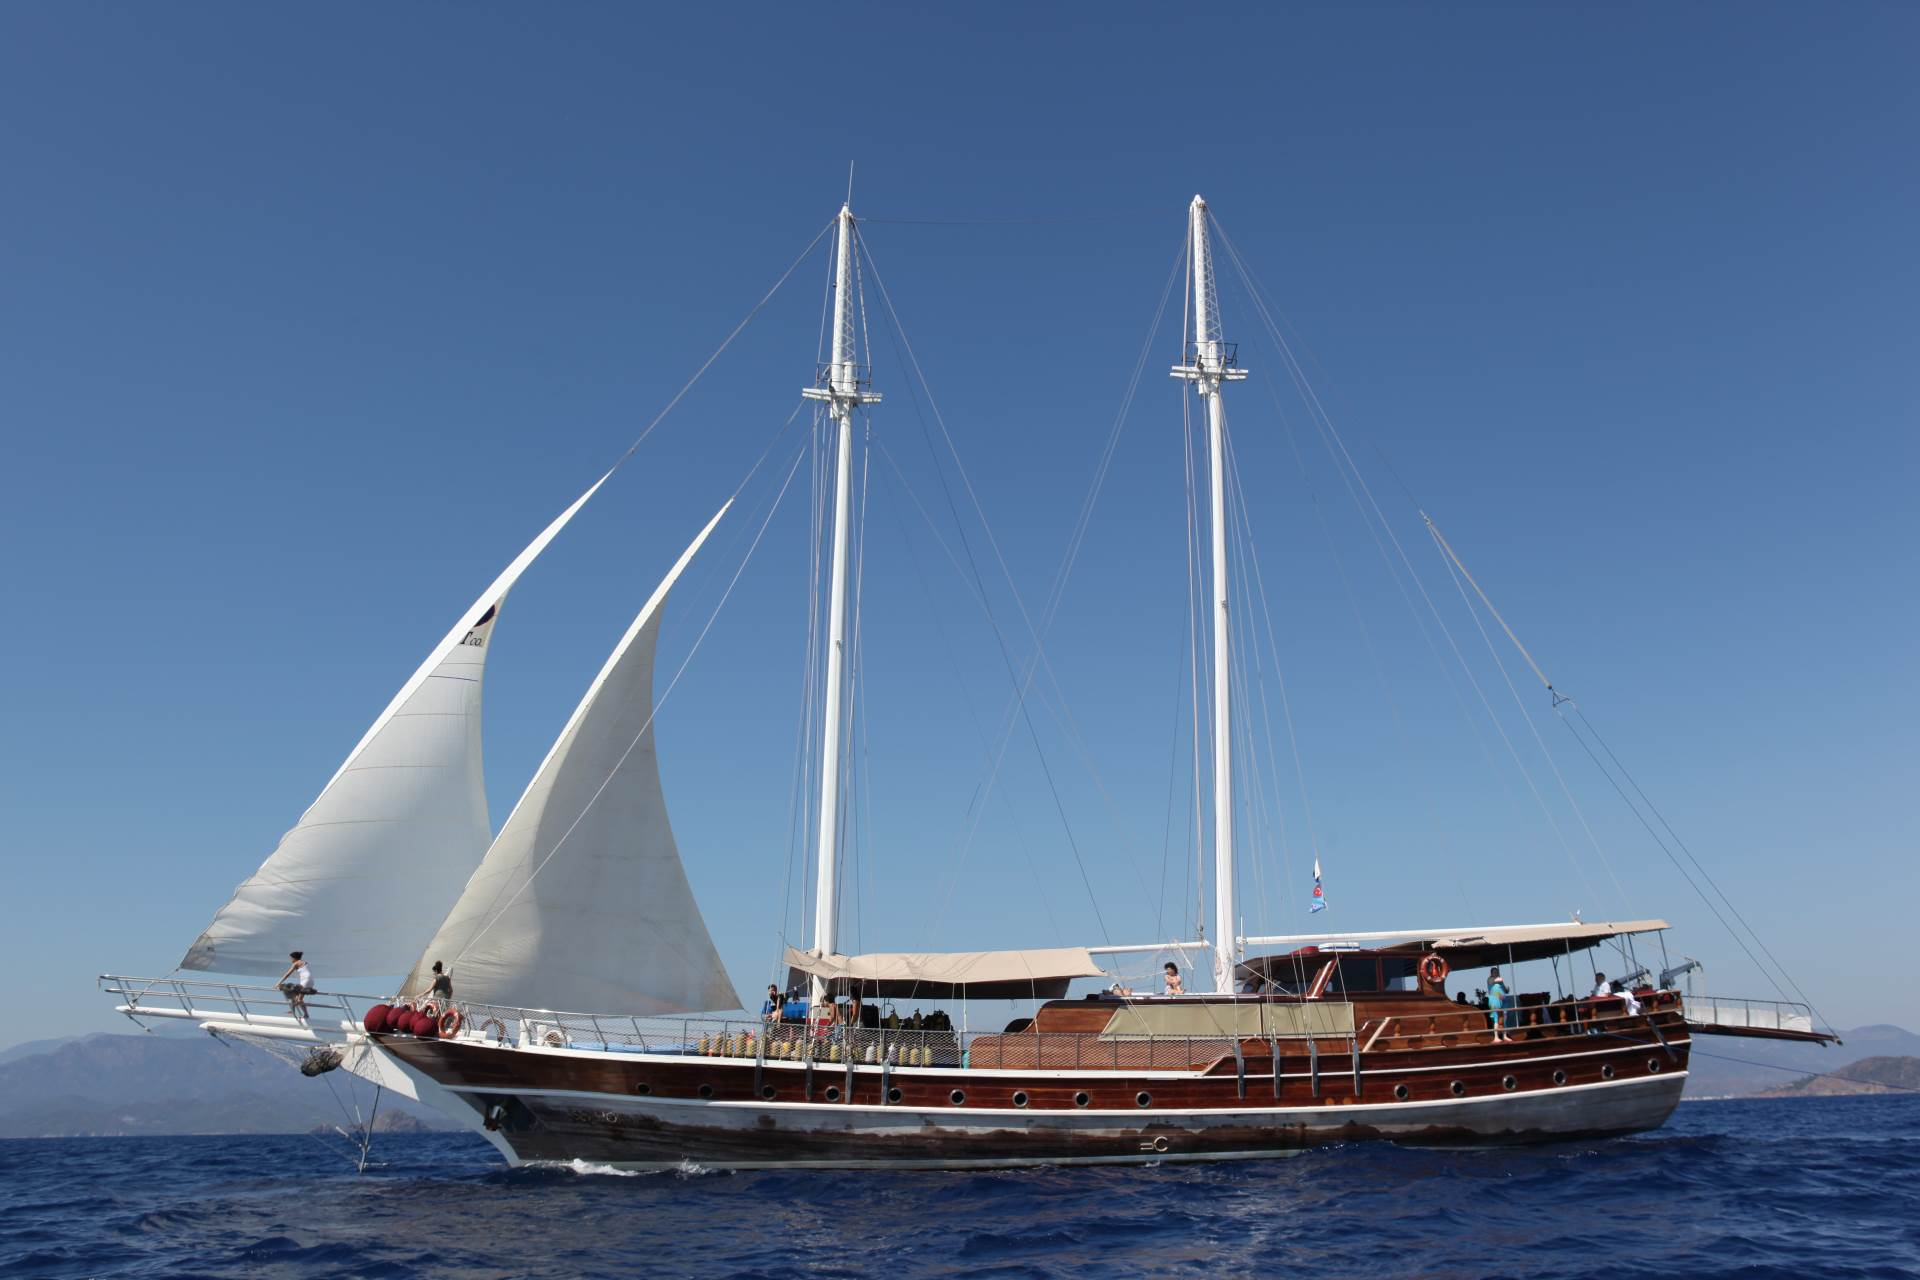 Seahorse - A is a 32 m wooden gulet. She a has 480 hp diesel engine, as well as traditional sail power. There are 7 en suite cabins, most with air conditioning. Hot water is available 24 hours a day. There is a TV, DVD player and a CD player as well a small on board library of books, films and music.